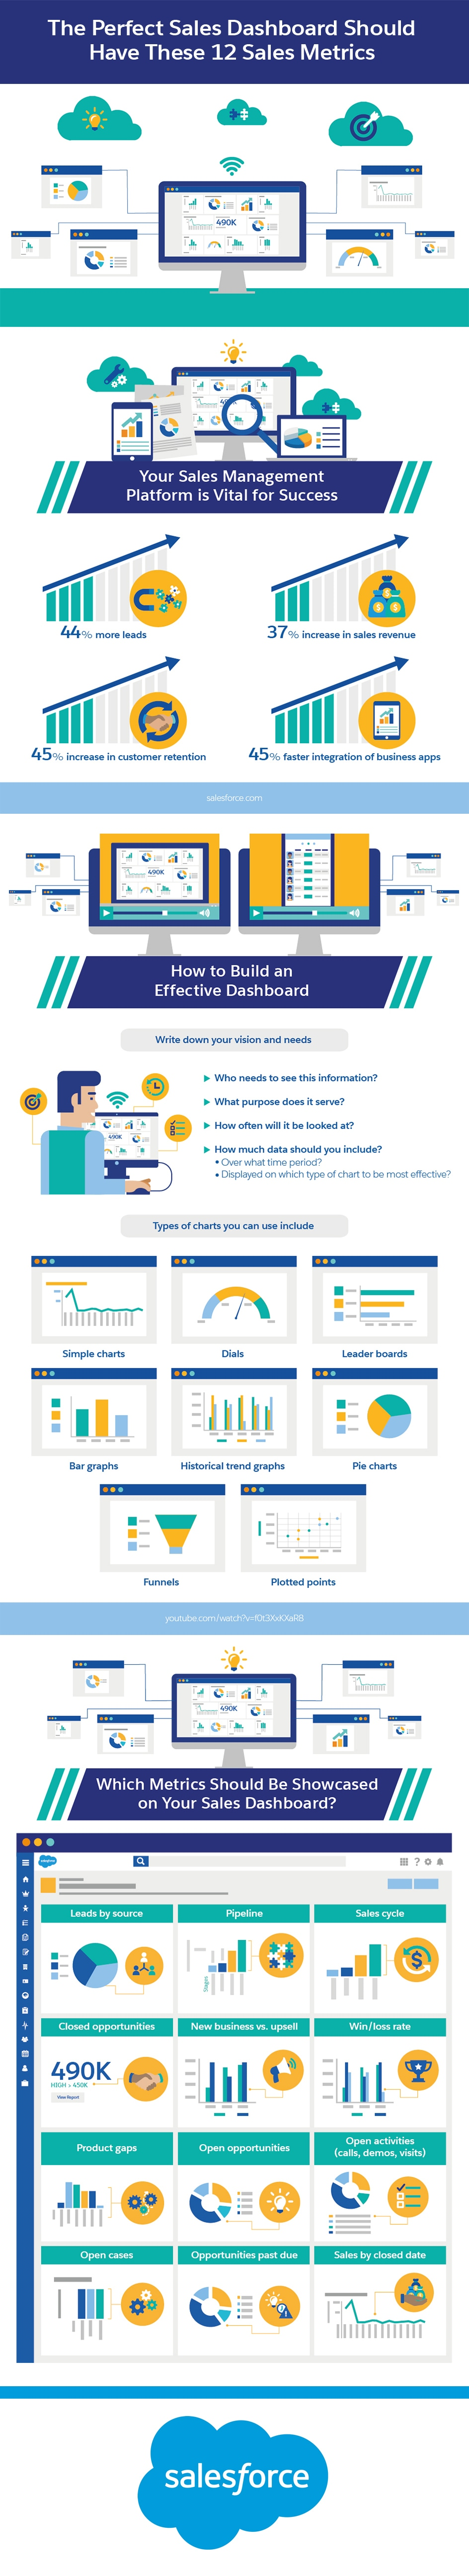 The Perfect Sales Dashboard Should Have These 12 Sales Metrics Infographic